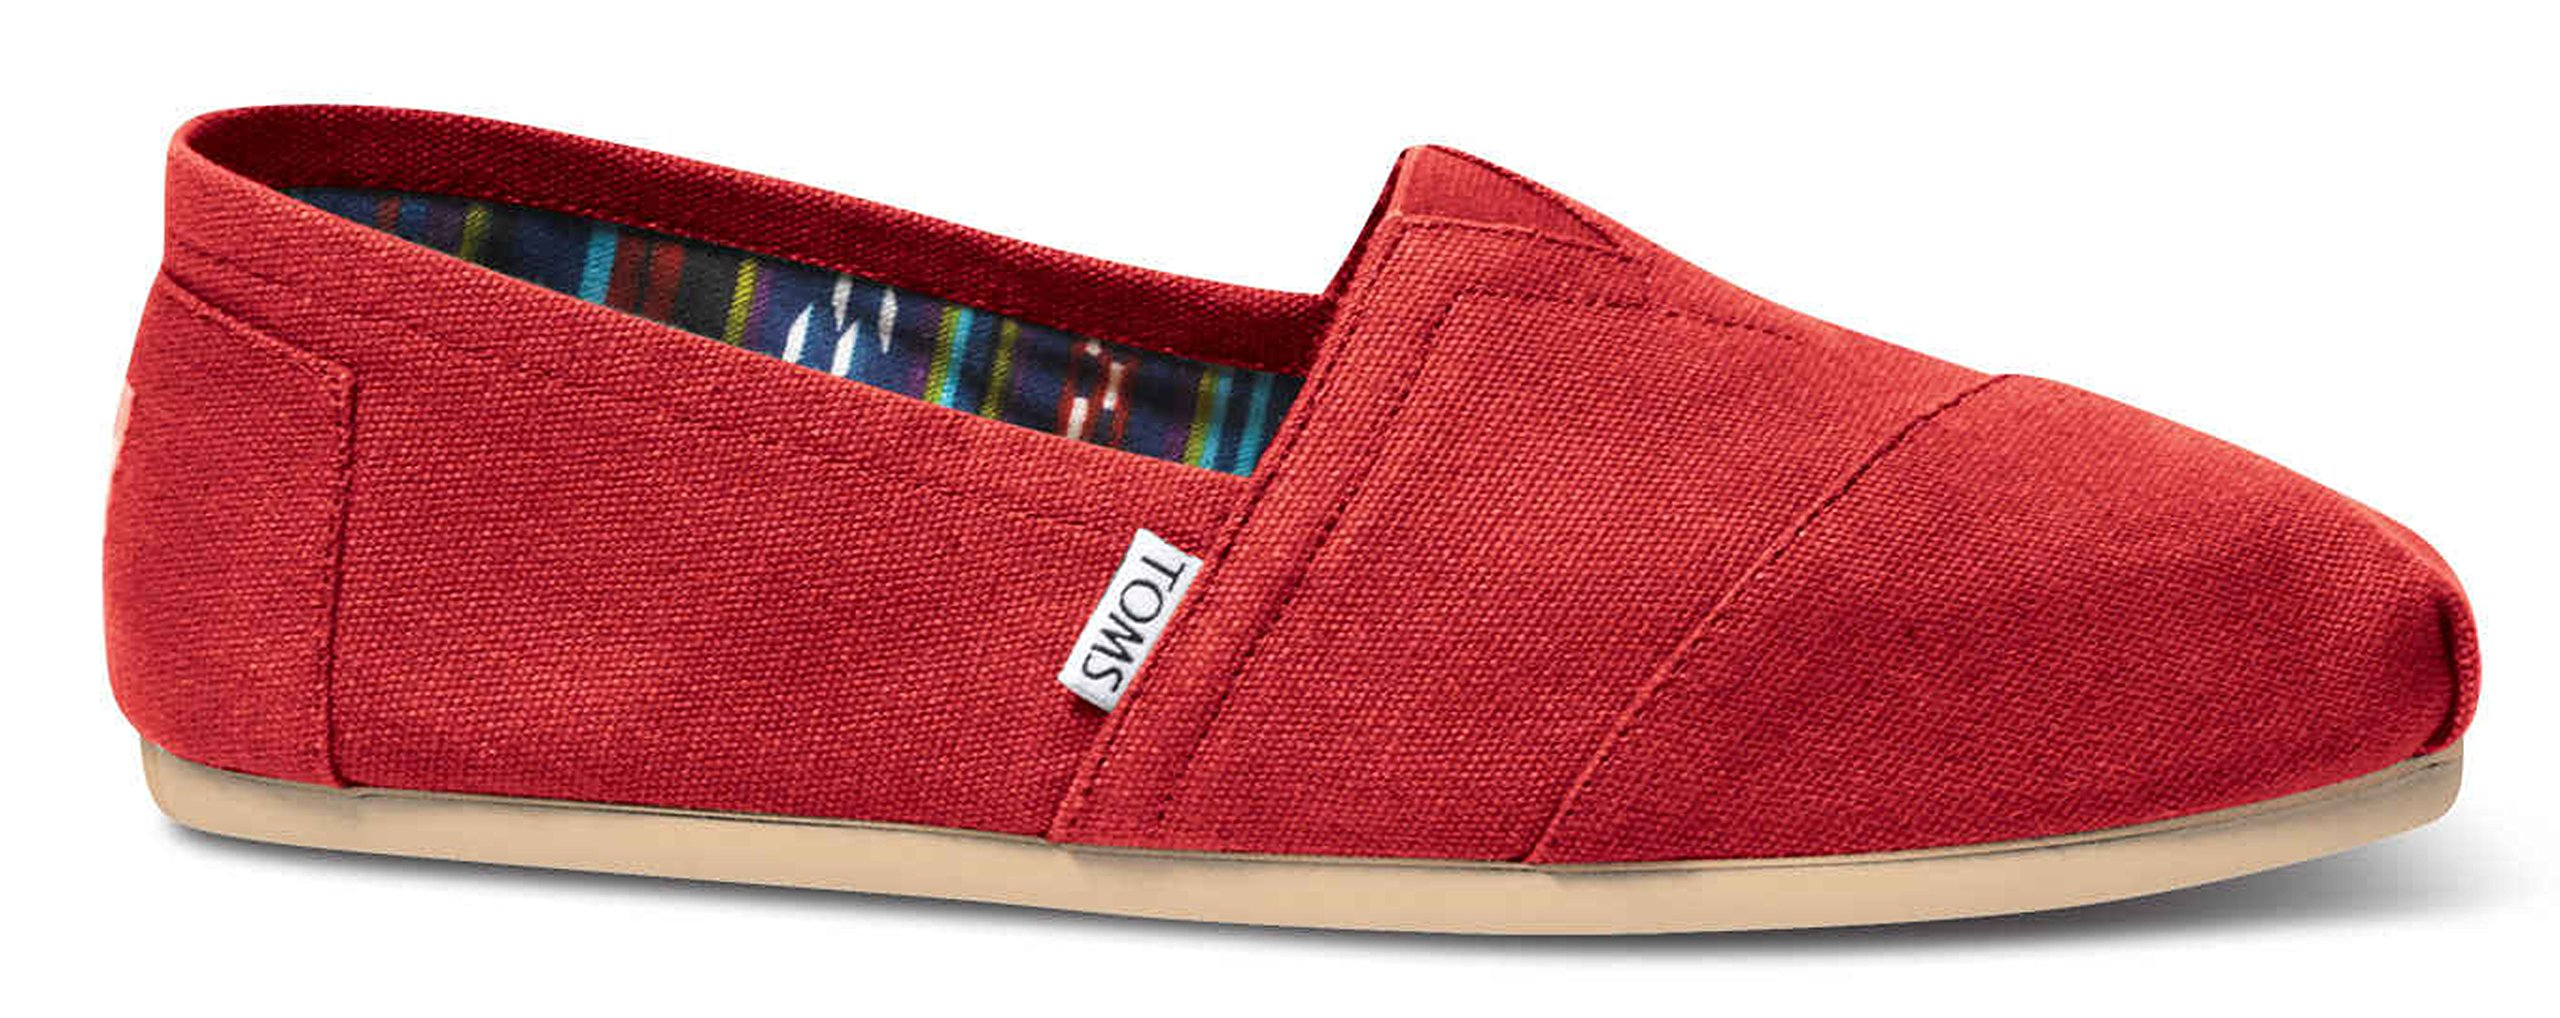 TOMS Men's Classic Canvas Slip On Red 9.5 D(M) US